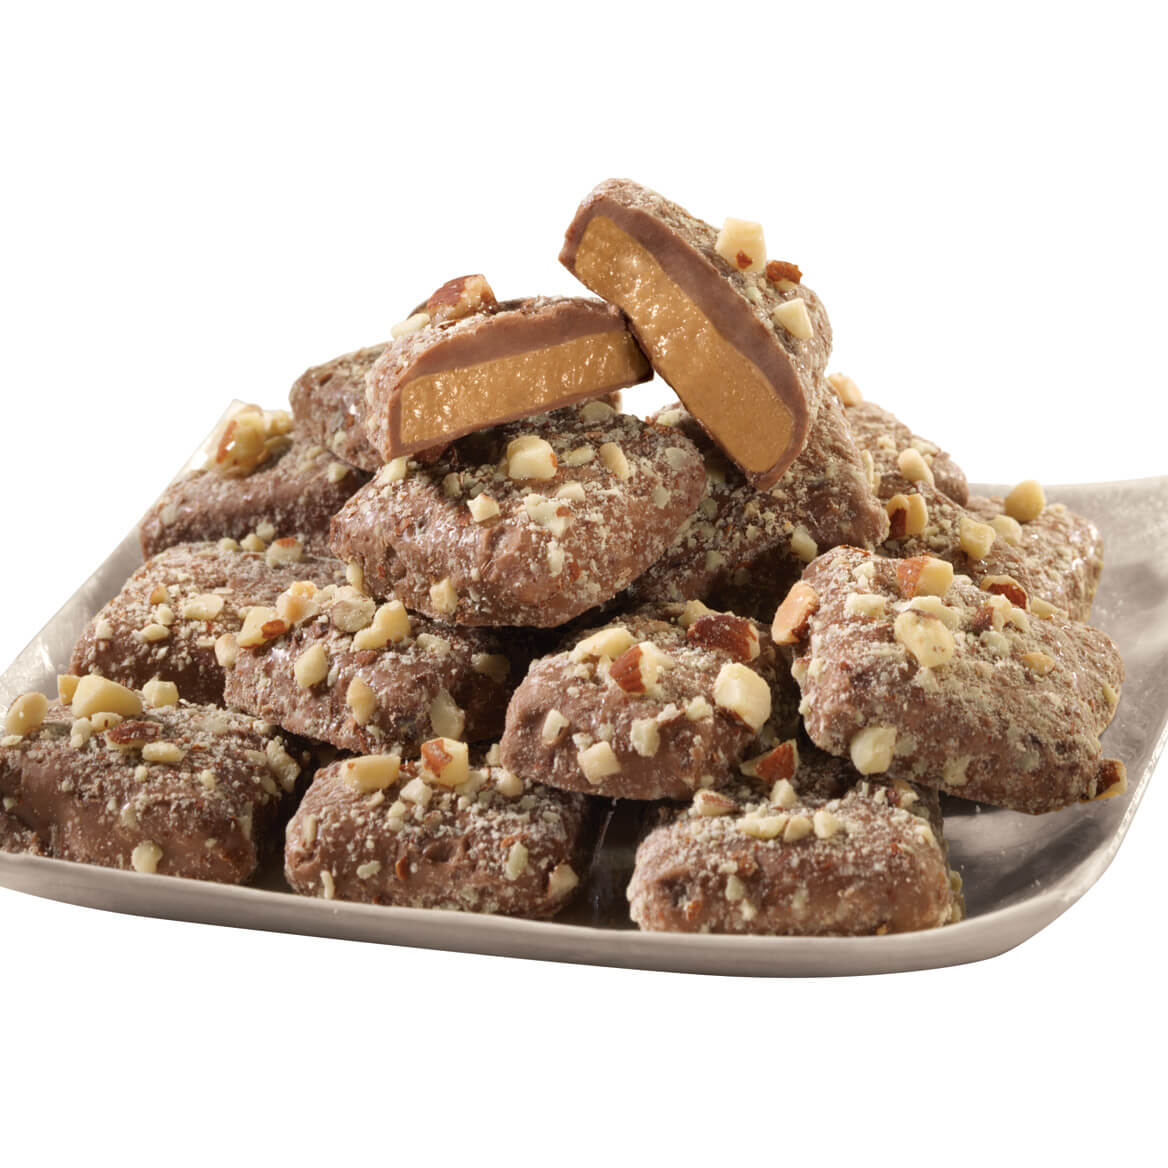 Almond Butter Toffee 14 oz-317271